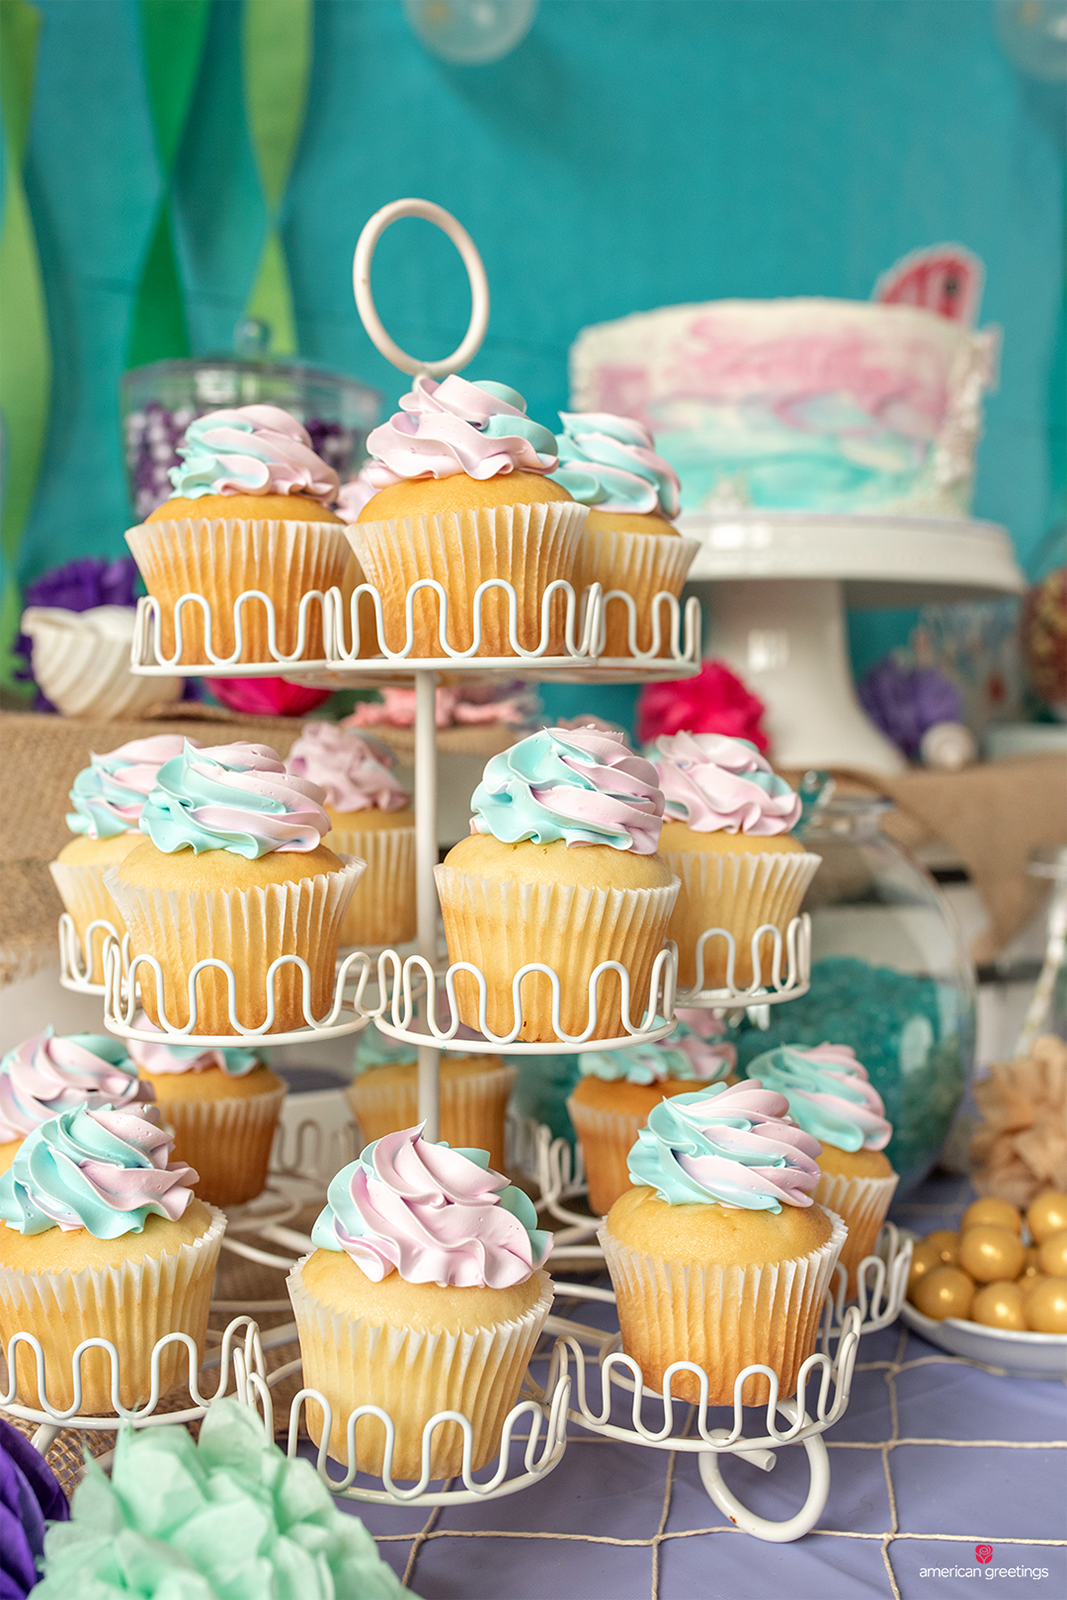 Cupcakes on a stand accessorized with pearl candies